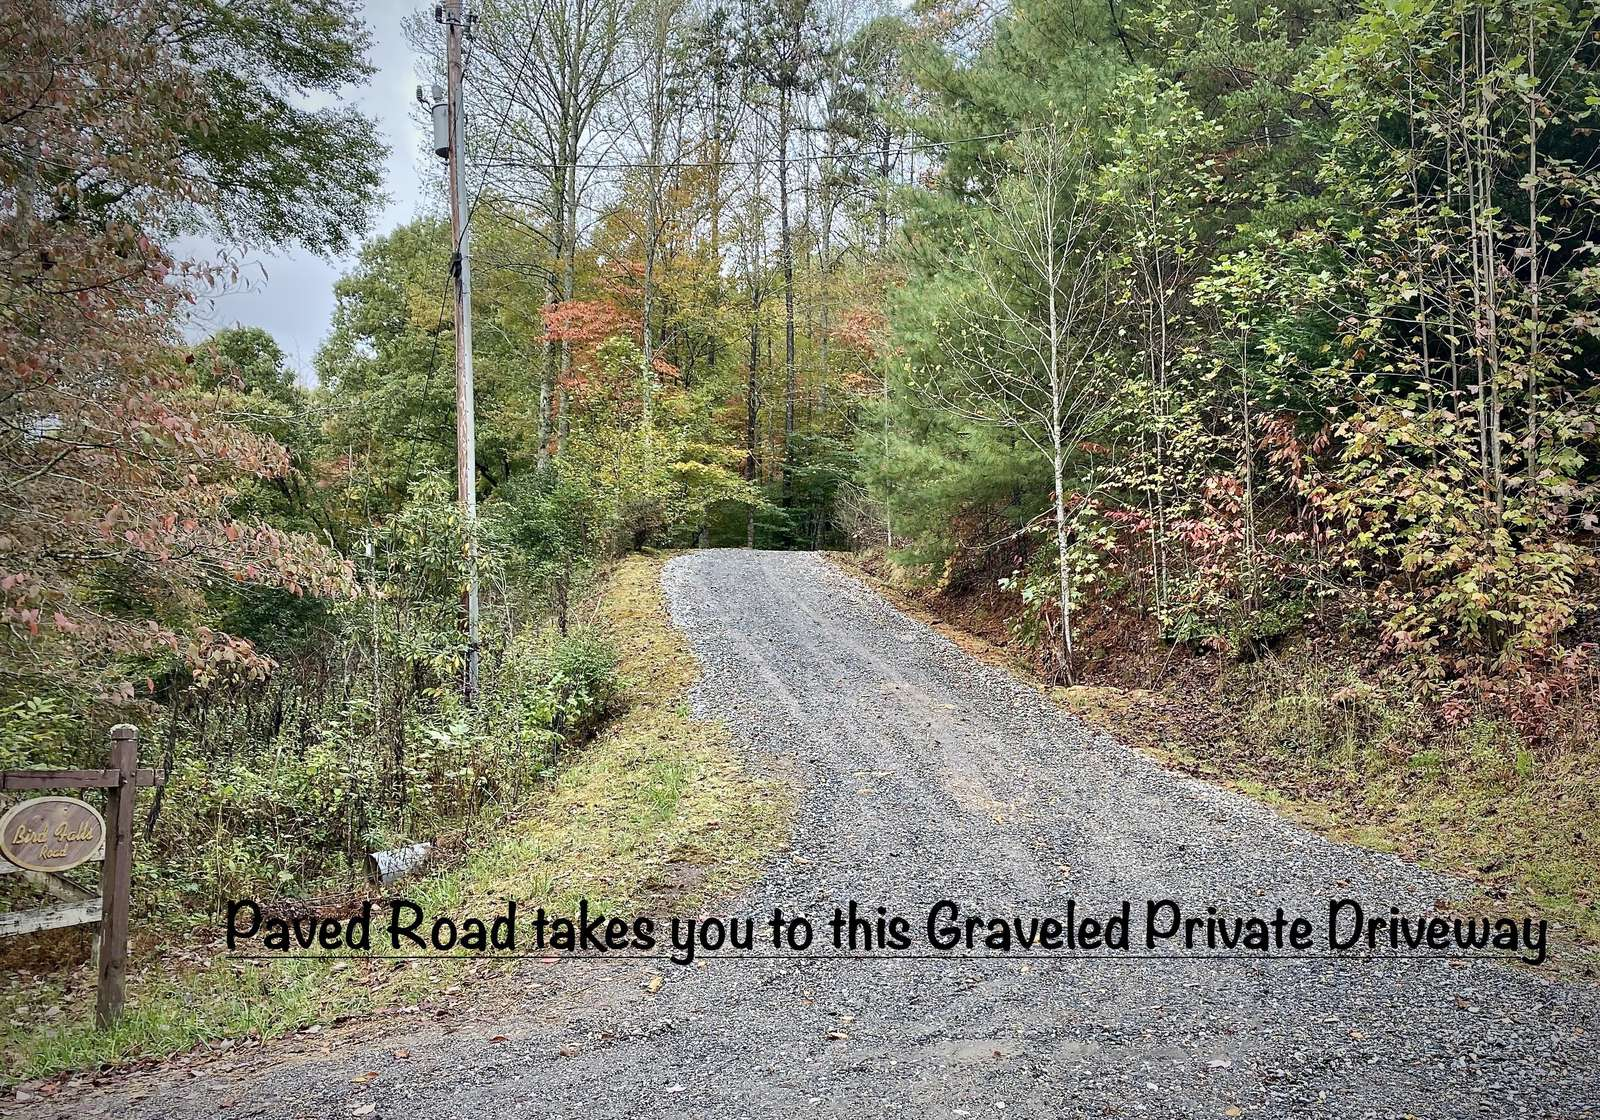 Paddlers Retreat's Private Driveway. The driveway curves to the right and the Cabin is within 10-15 yards (I don't think this driveway is steep, but folks used to flat land may disagree).